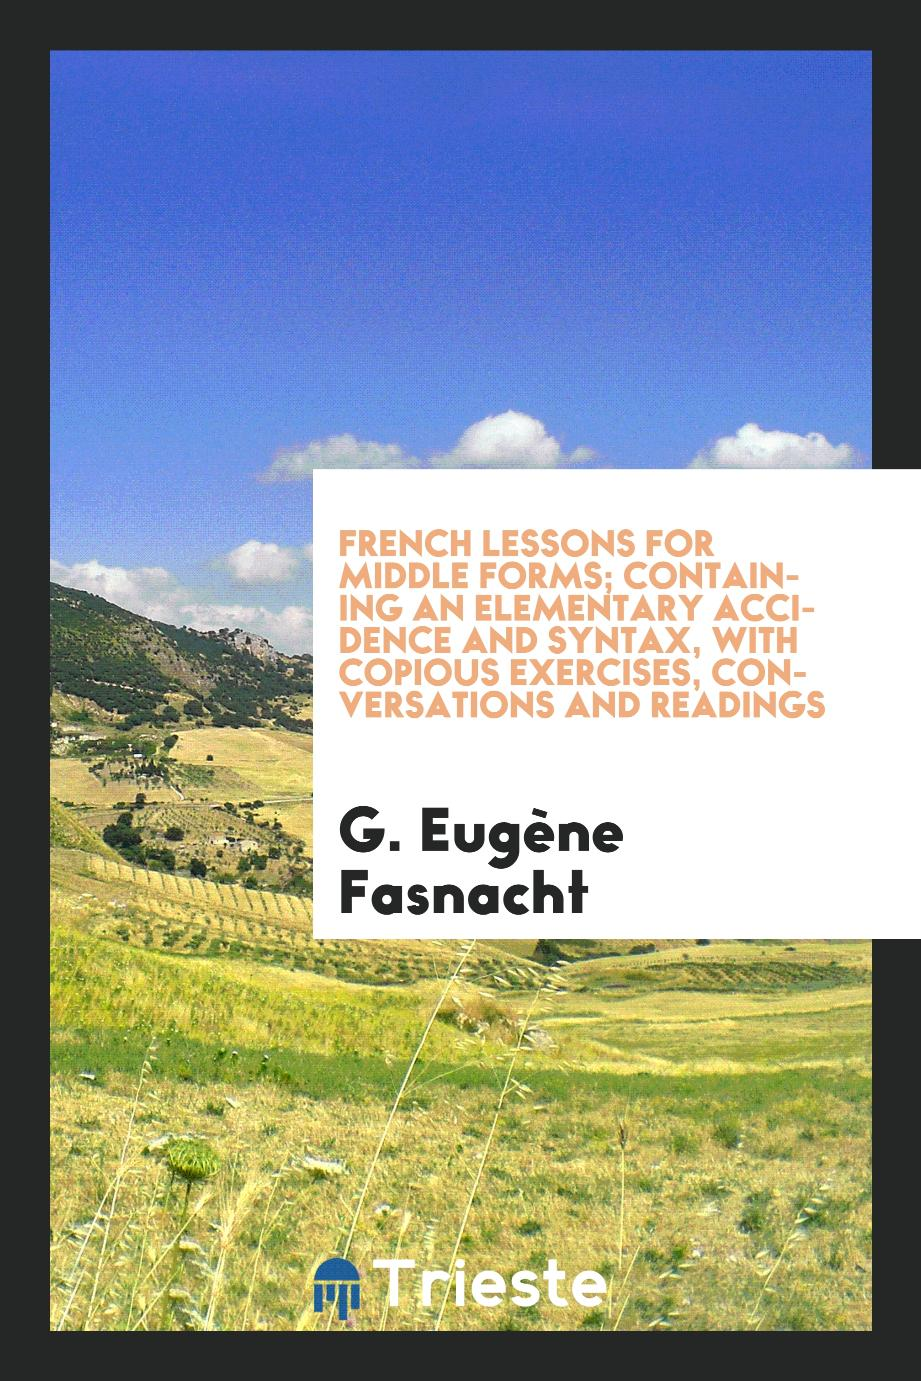 French lessons for middle forms; containing an elementary accidence and syntax, with copious exercises, conversations and readings